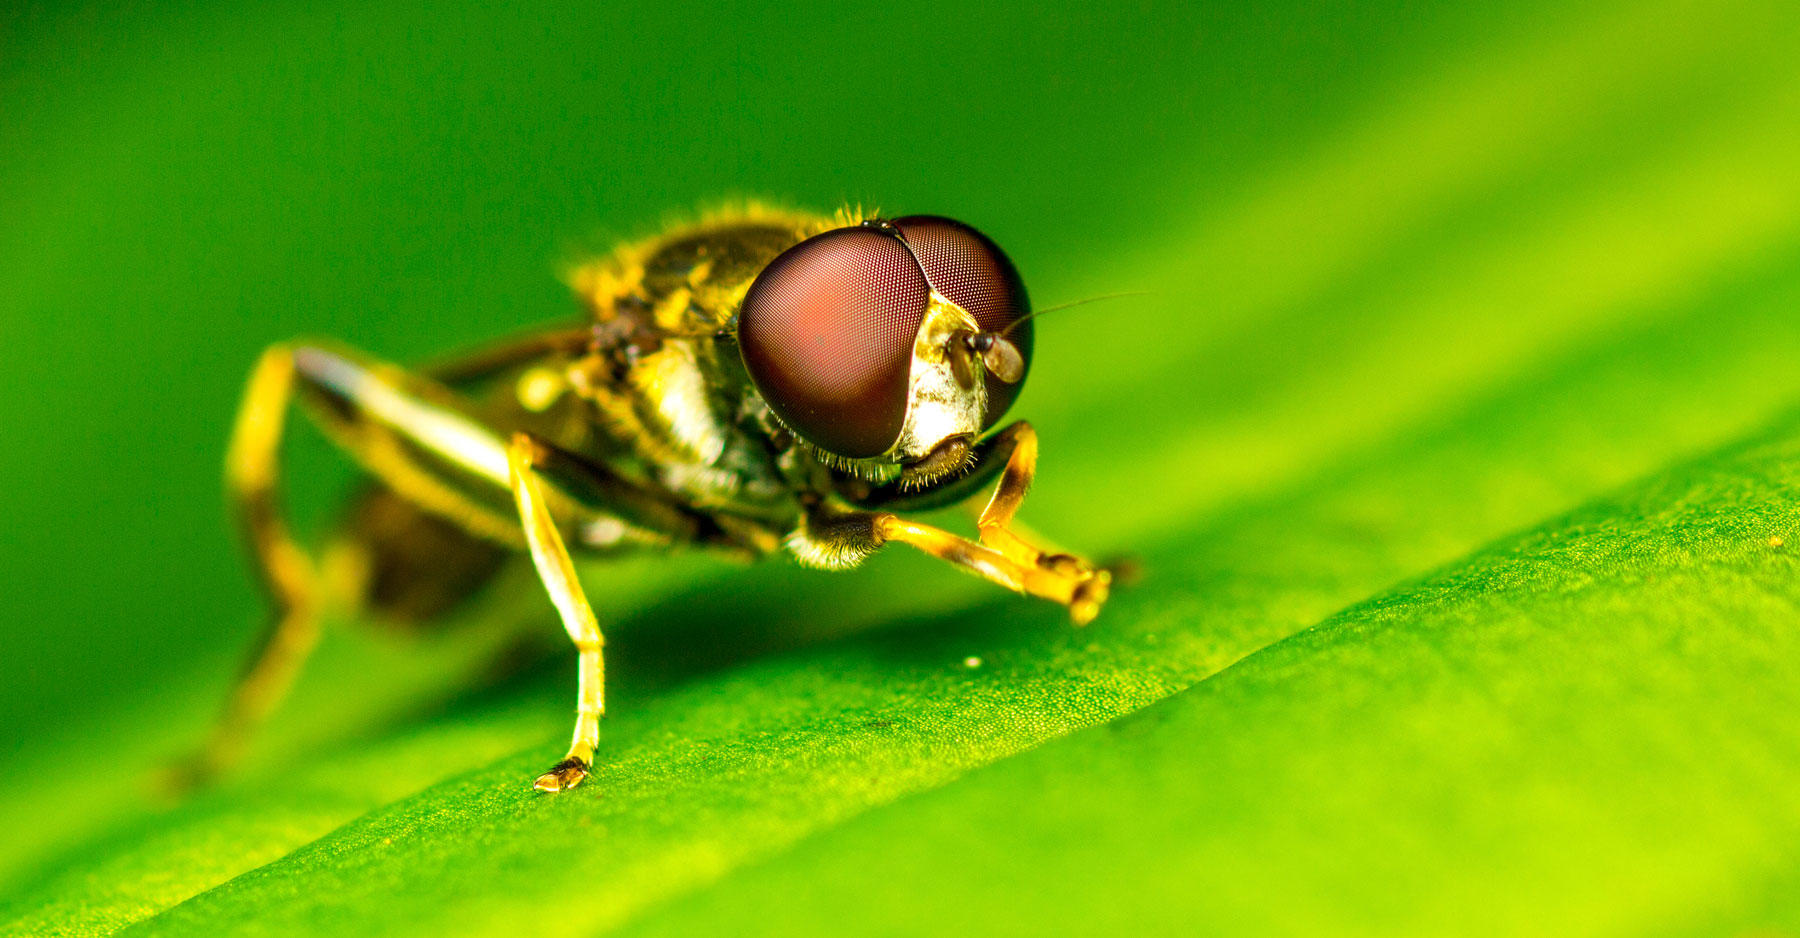 Male fruit fly on a blade of grass macro